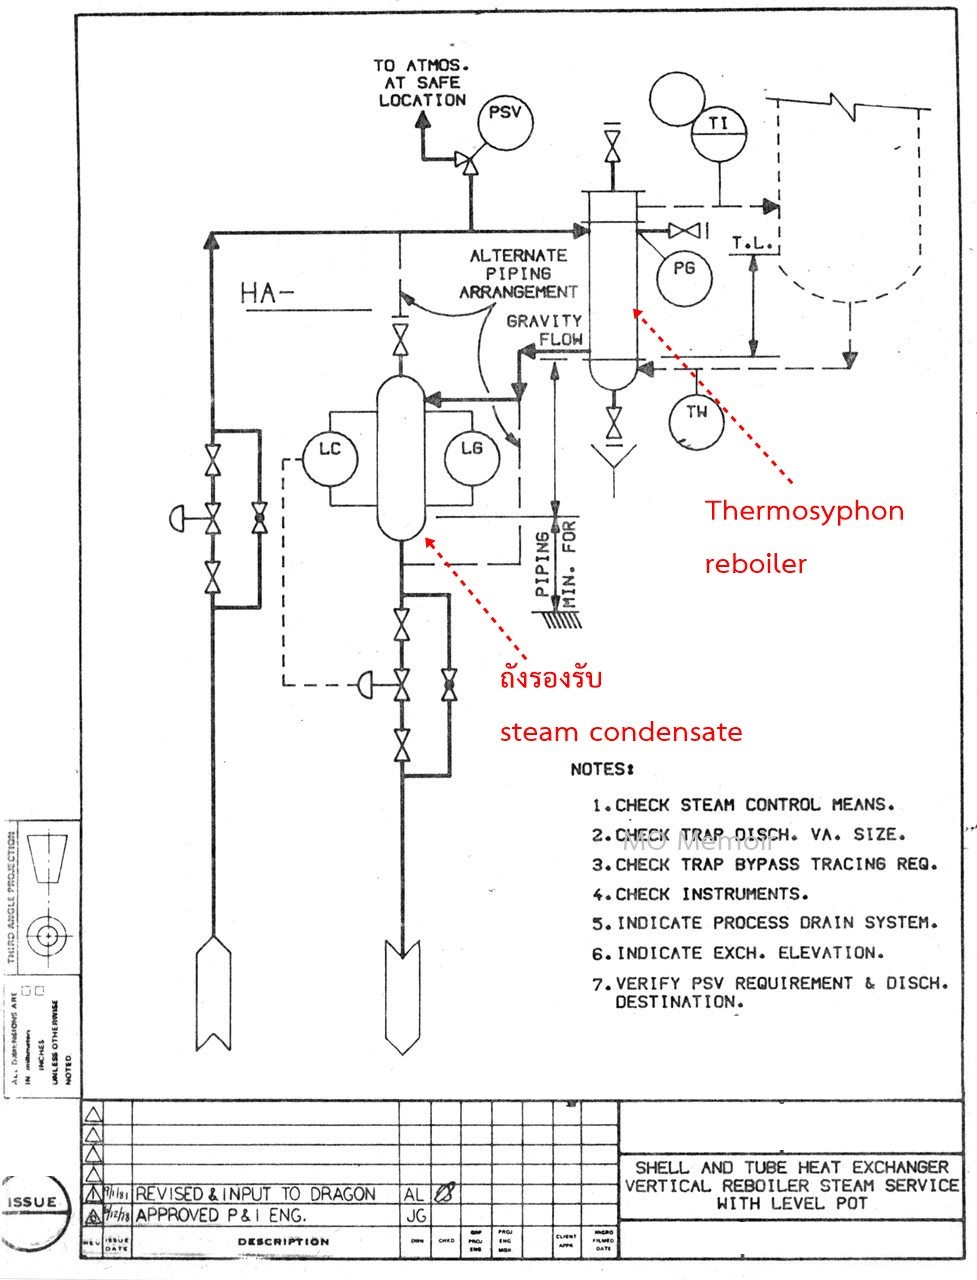 Mo Memoir Memoirs Of Metal Oxide Catalyst Research Group Piping Layout Heat Exchanger Reboiler Thermosyphon Shell And Tube